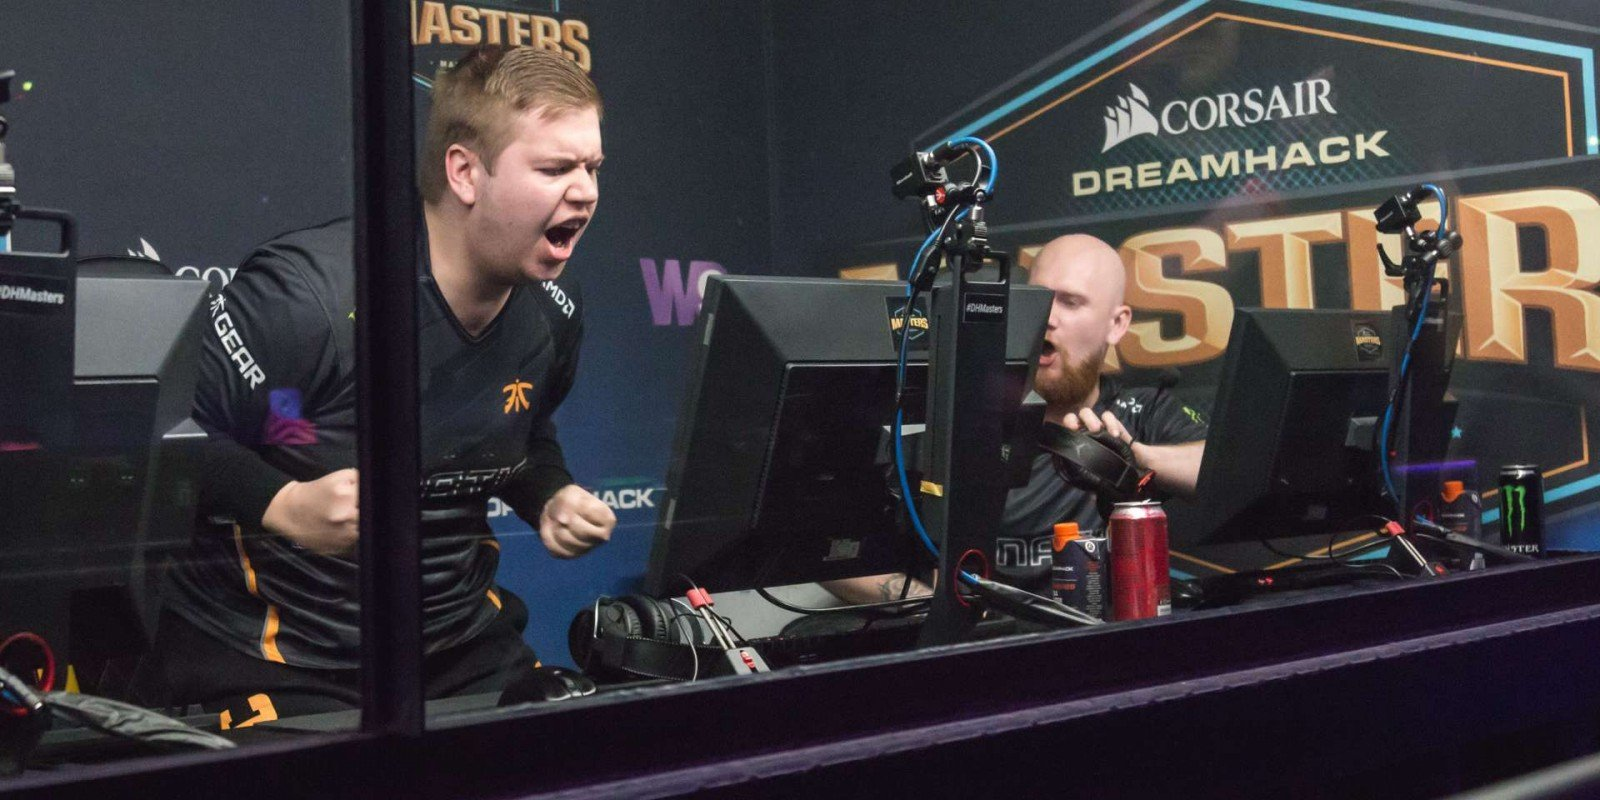 Photos of Fnatic playing Counter-Strike: Global Offensive at DreamHack Masters in Marseille, France